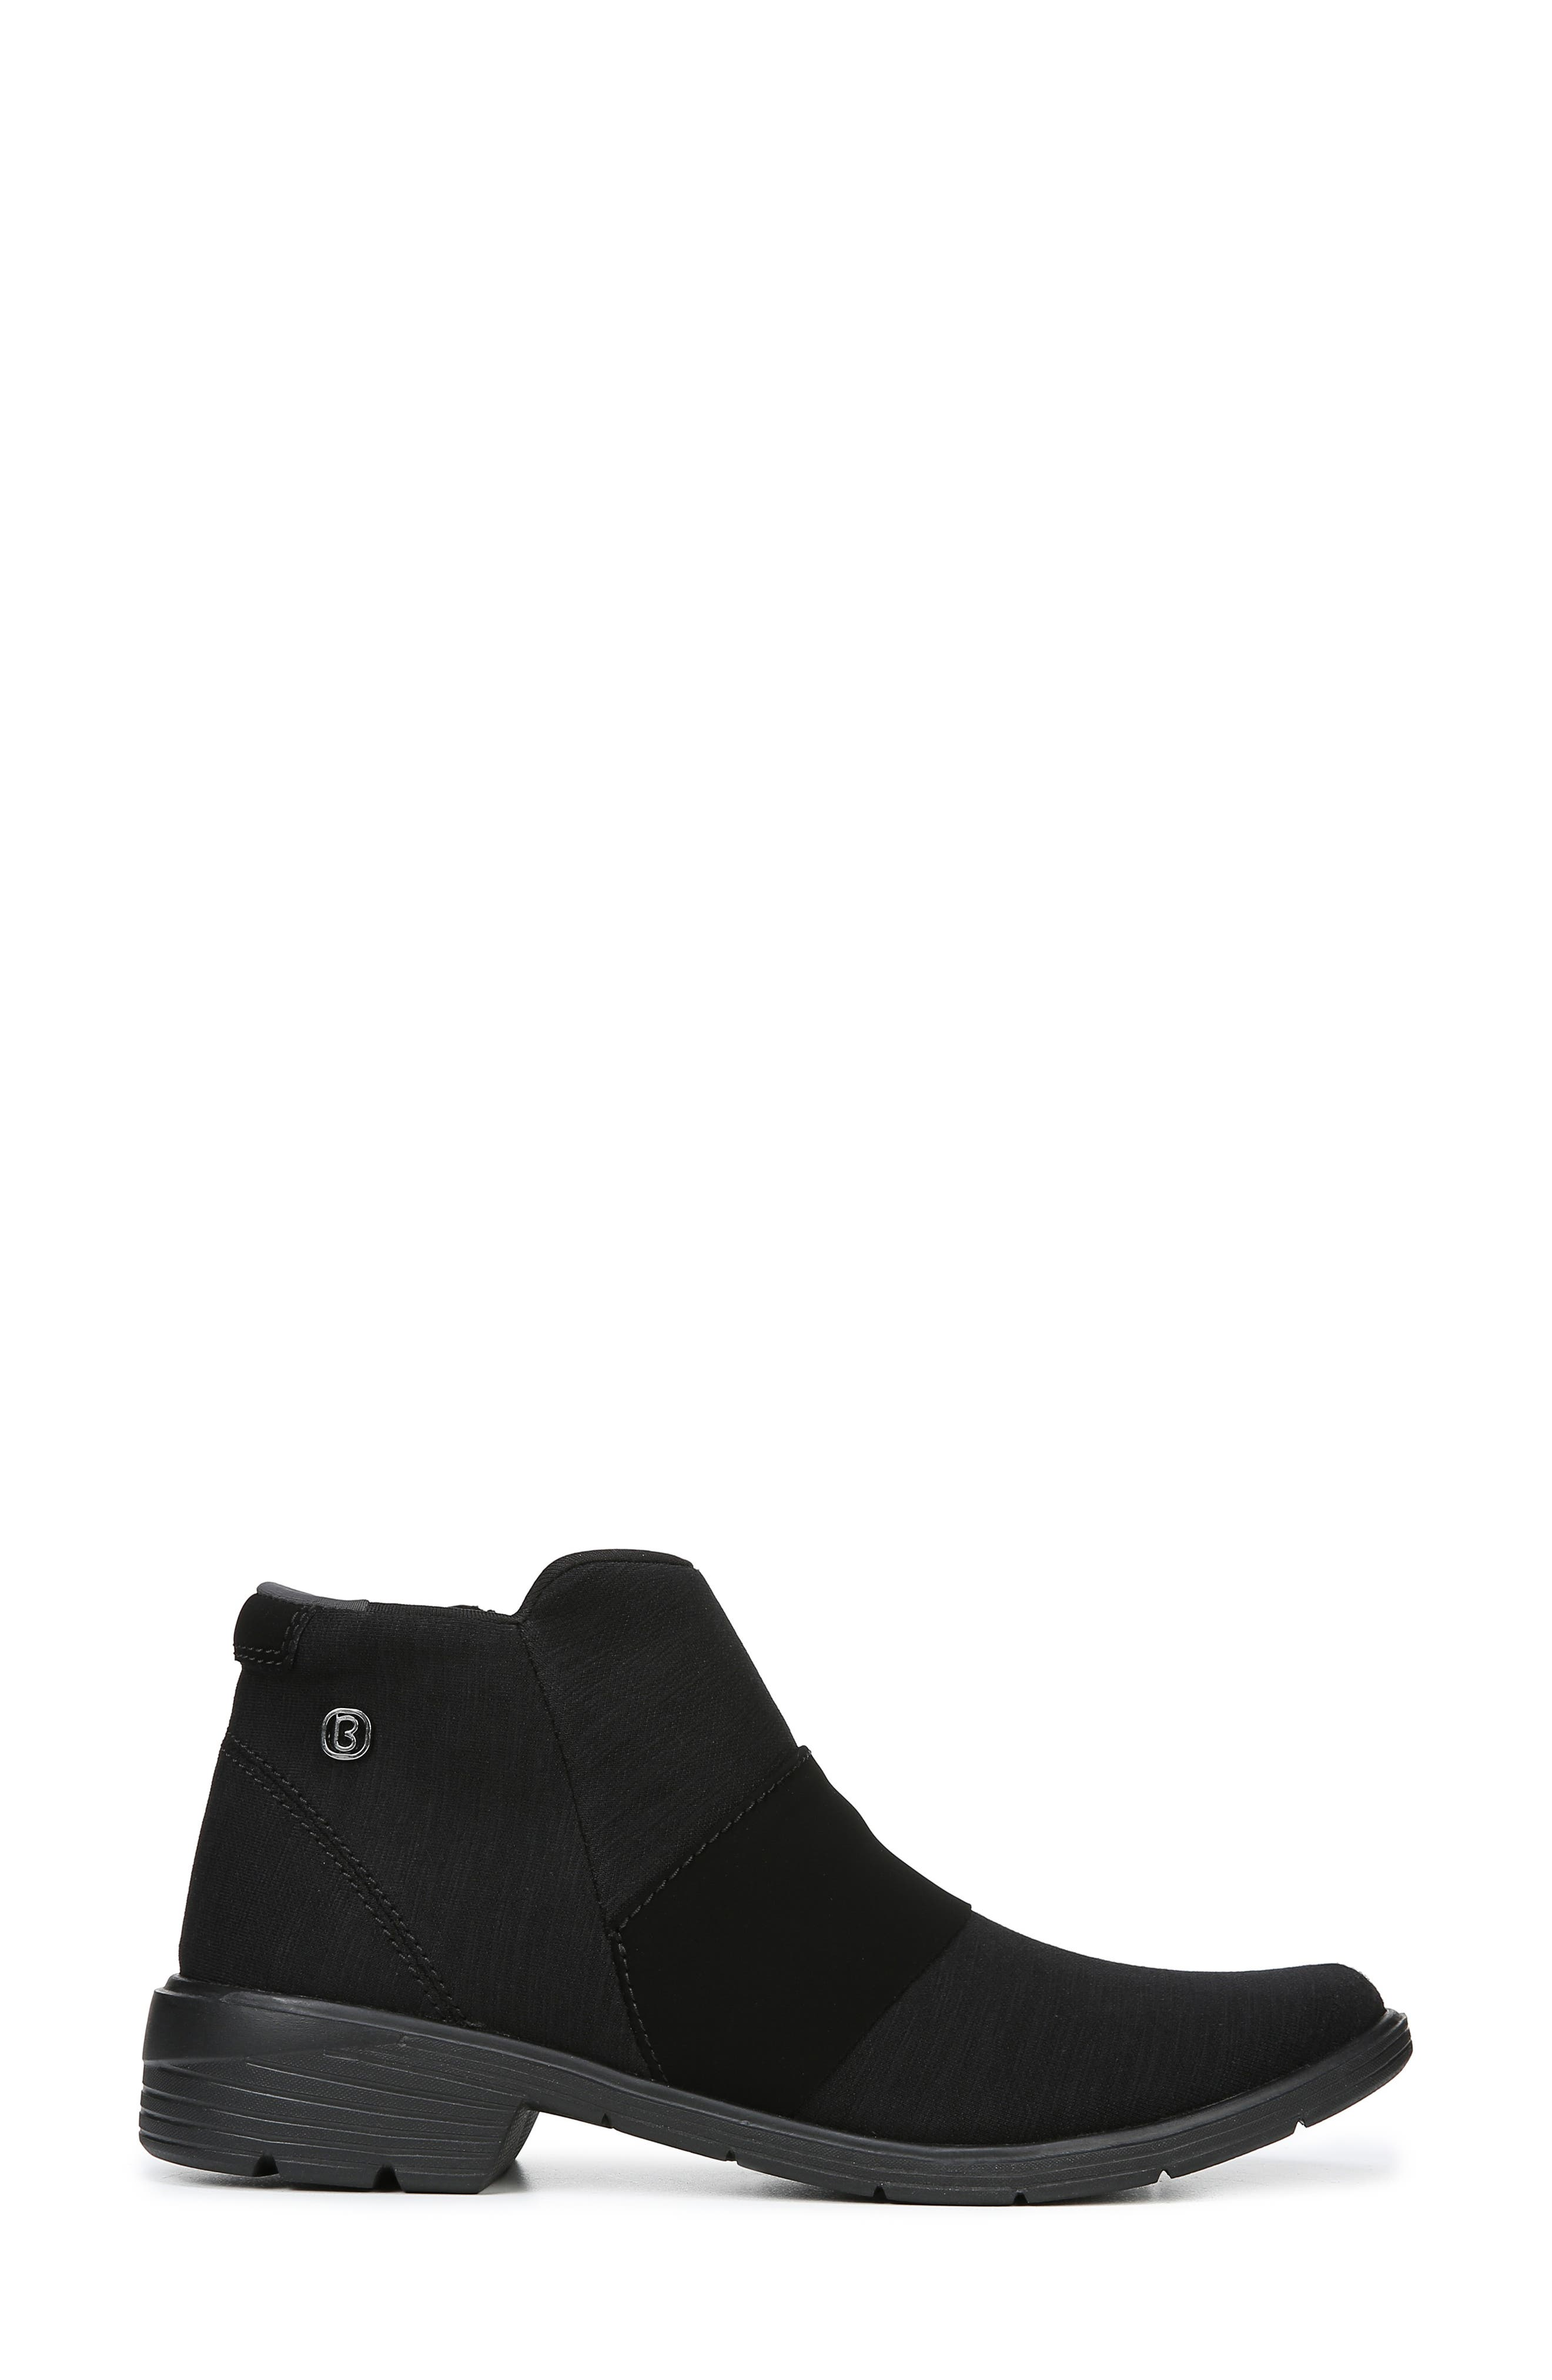 Billie Bootie,                             Alternate thumbnail 3, color,                             BLACK THICK HEATHER FABRIC